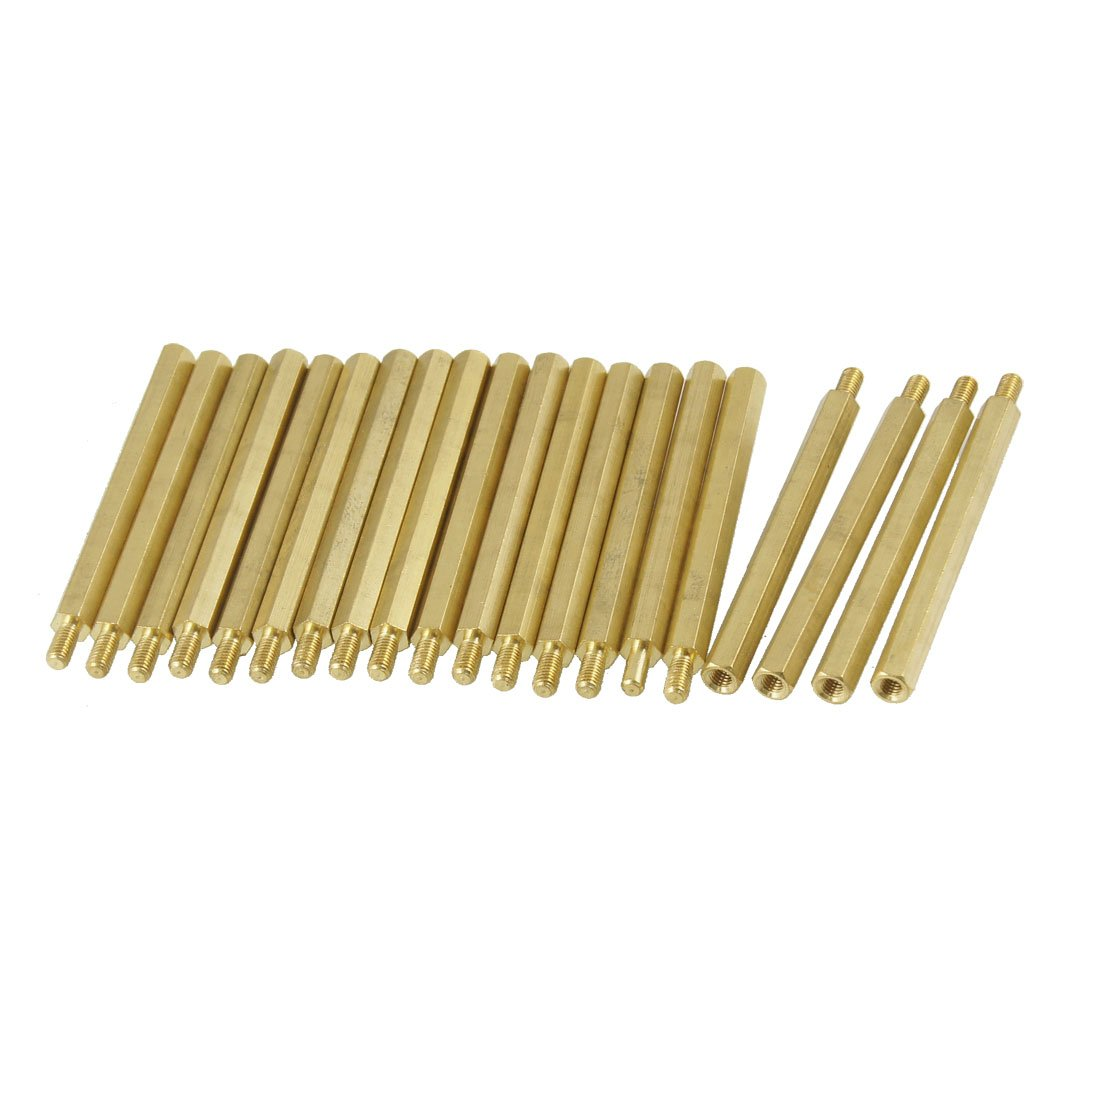 CLOS 20 Pcs M3 Male x M3 Female Hexagonal Thread PCB Standoff Spacer 50mm Body Length 20pcs m3 copper standoff spacer stud male to female m3 4 6mm hexagonal stud length 4 5 6 7 8 9 10 11 12mm